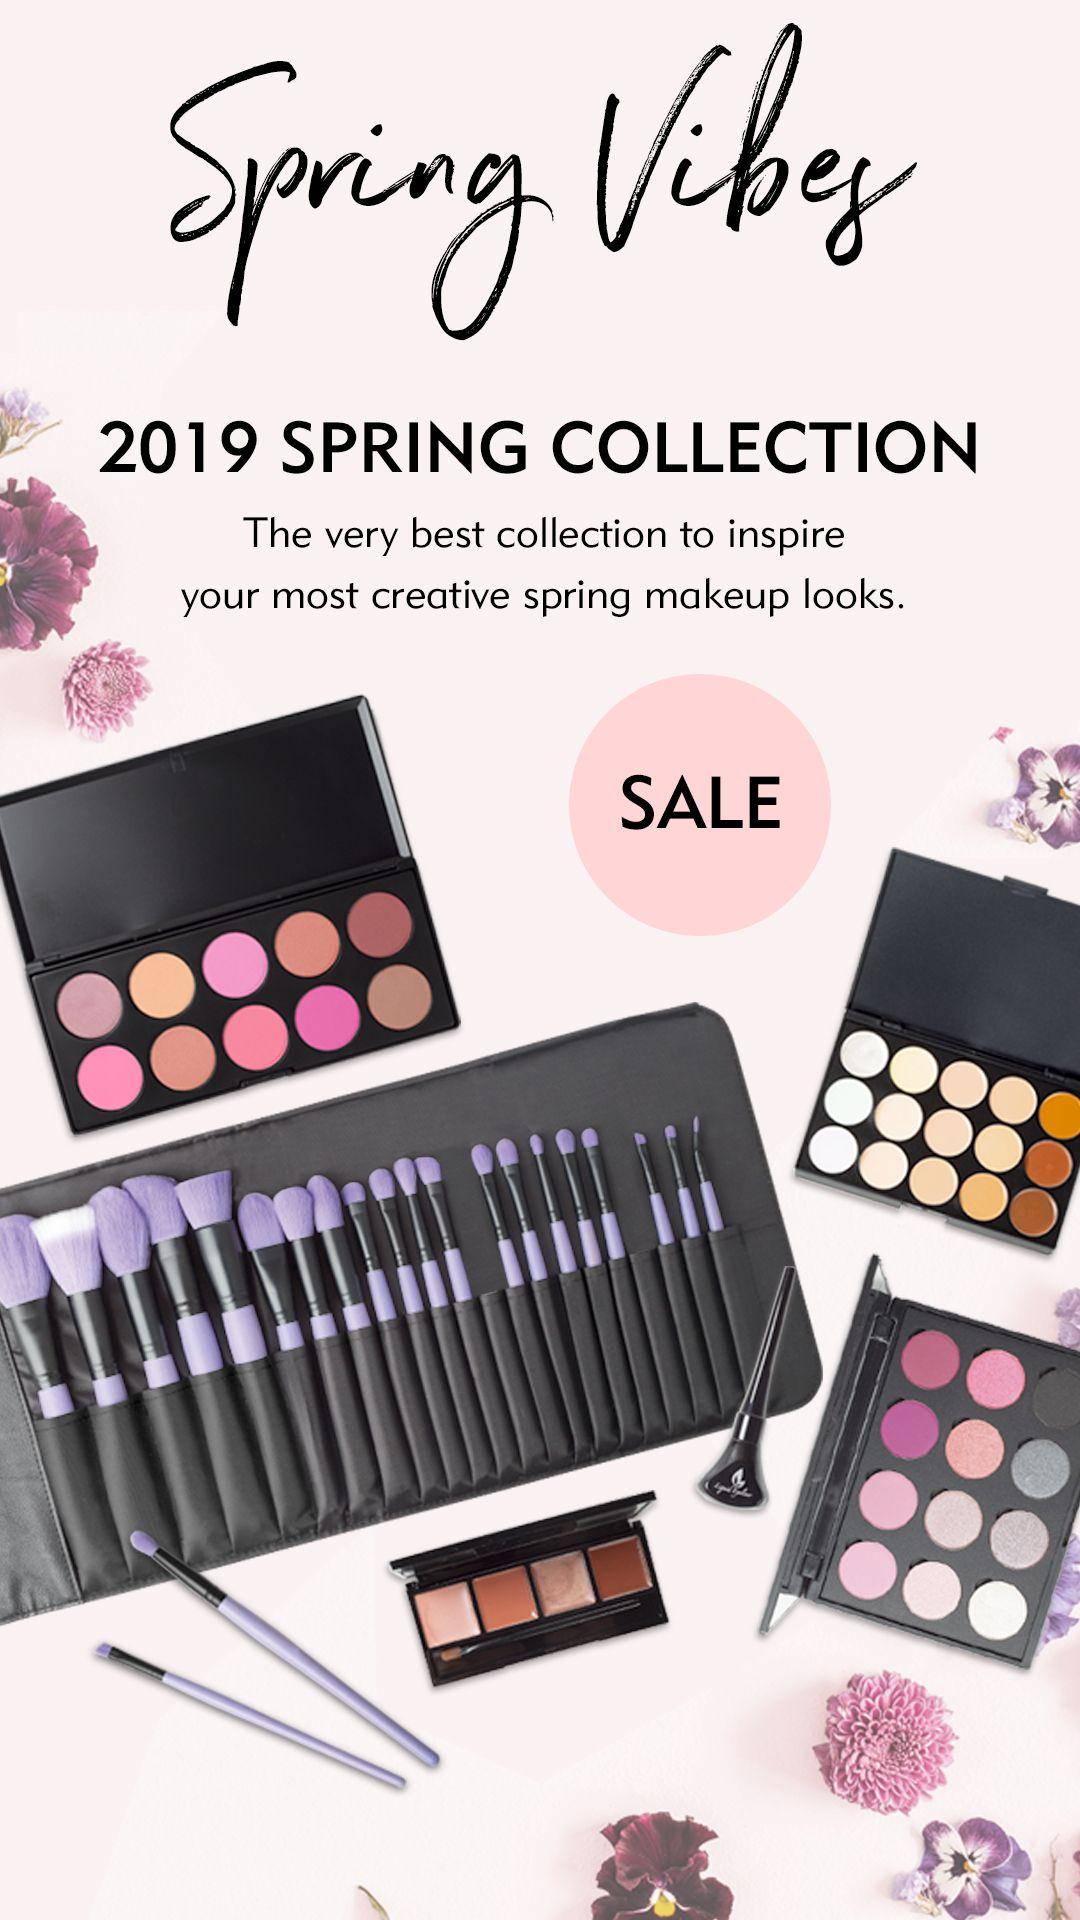 Check Out The New 2019 Spring Collection The Very Best To